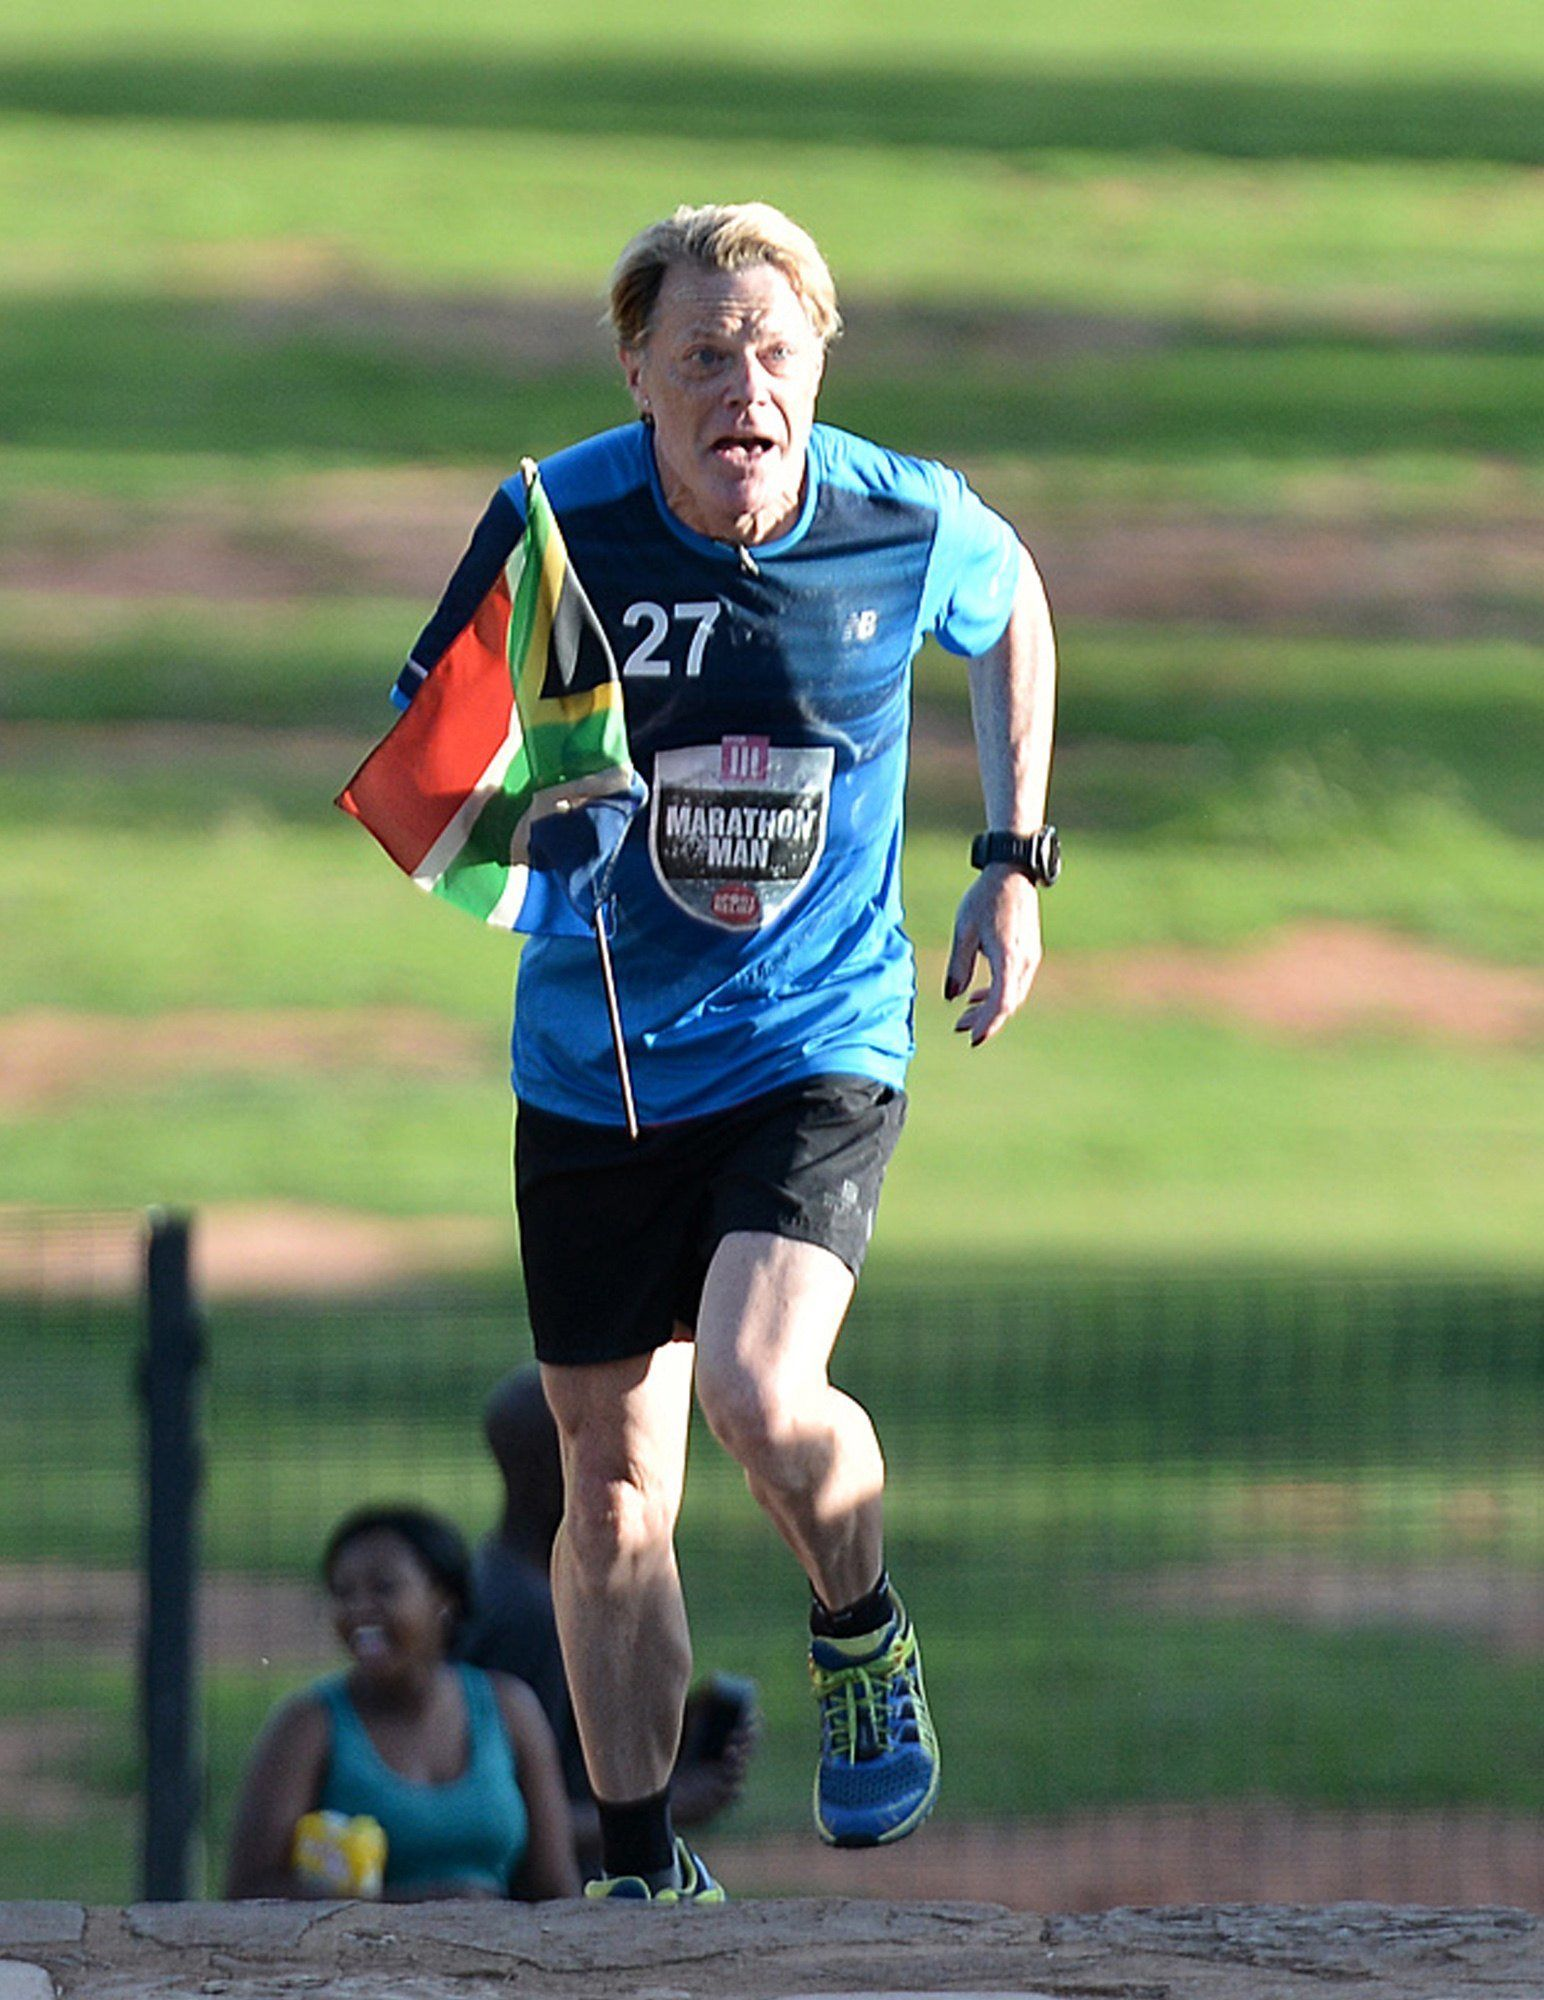 Eddie Izzard 'Delighted' After Completing 27 Marathons, Raising